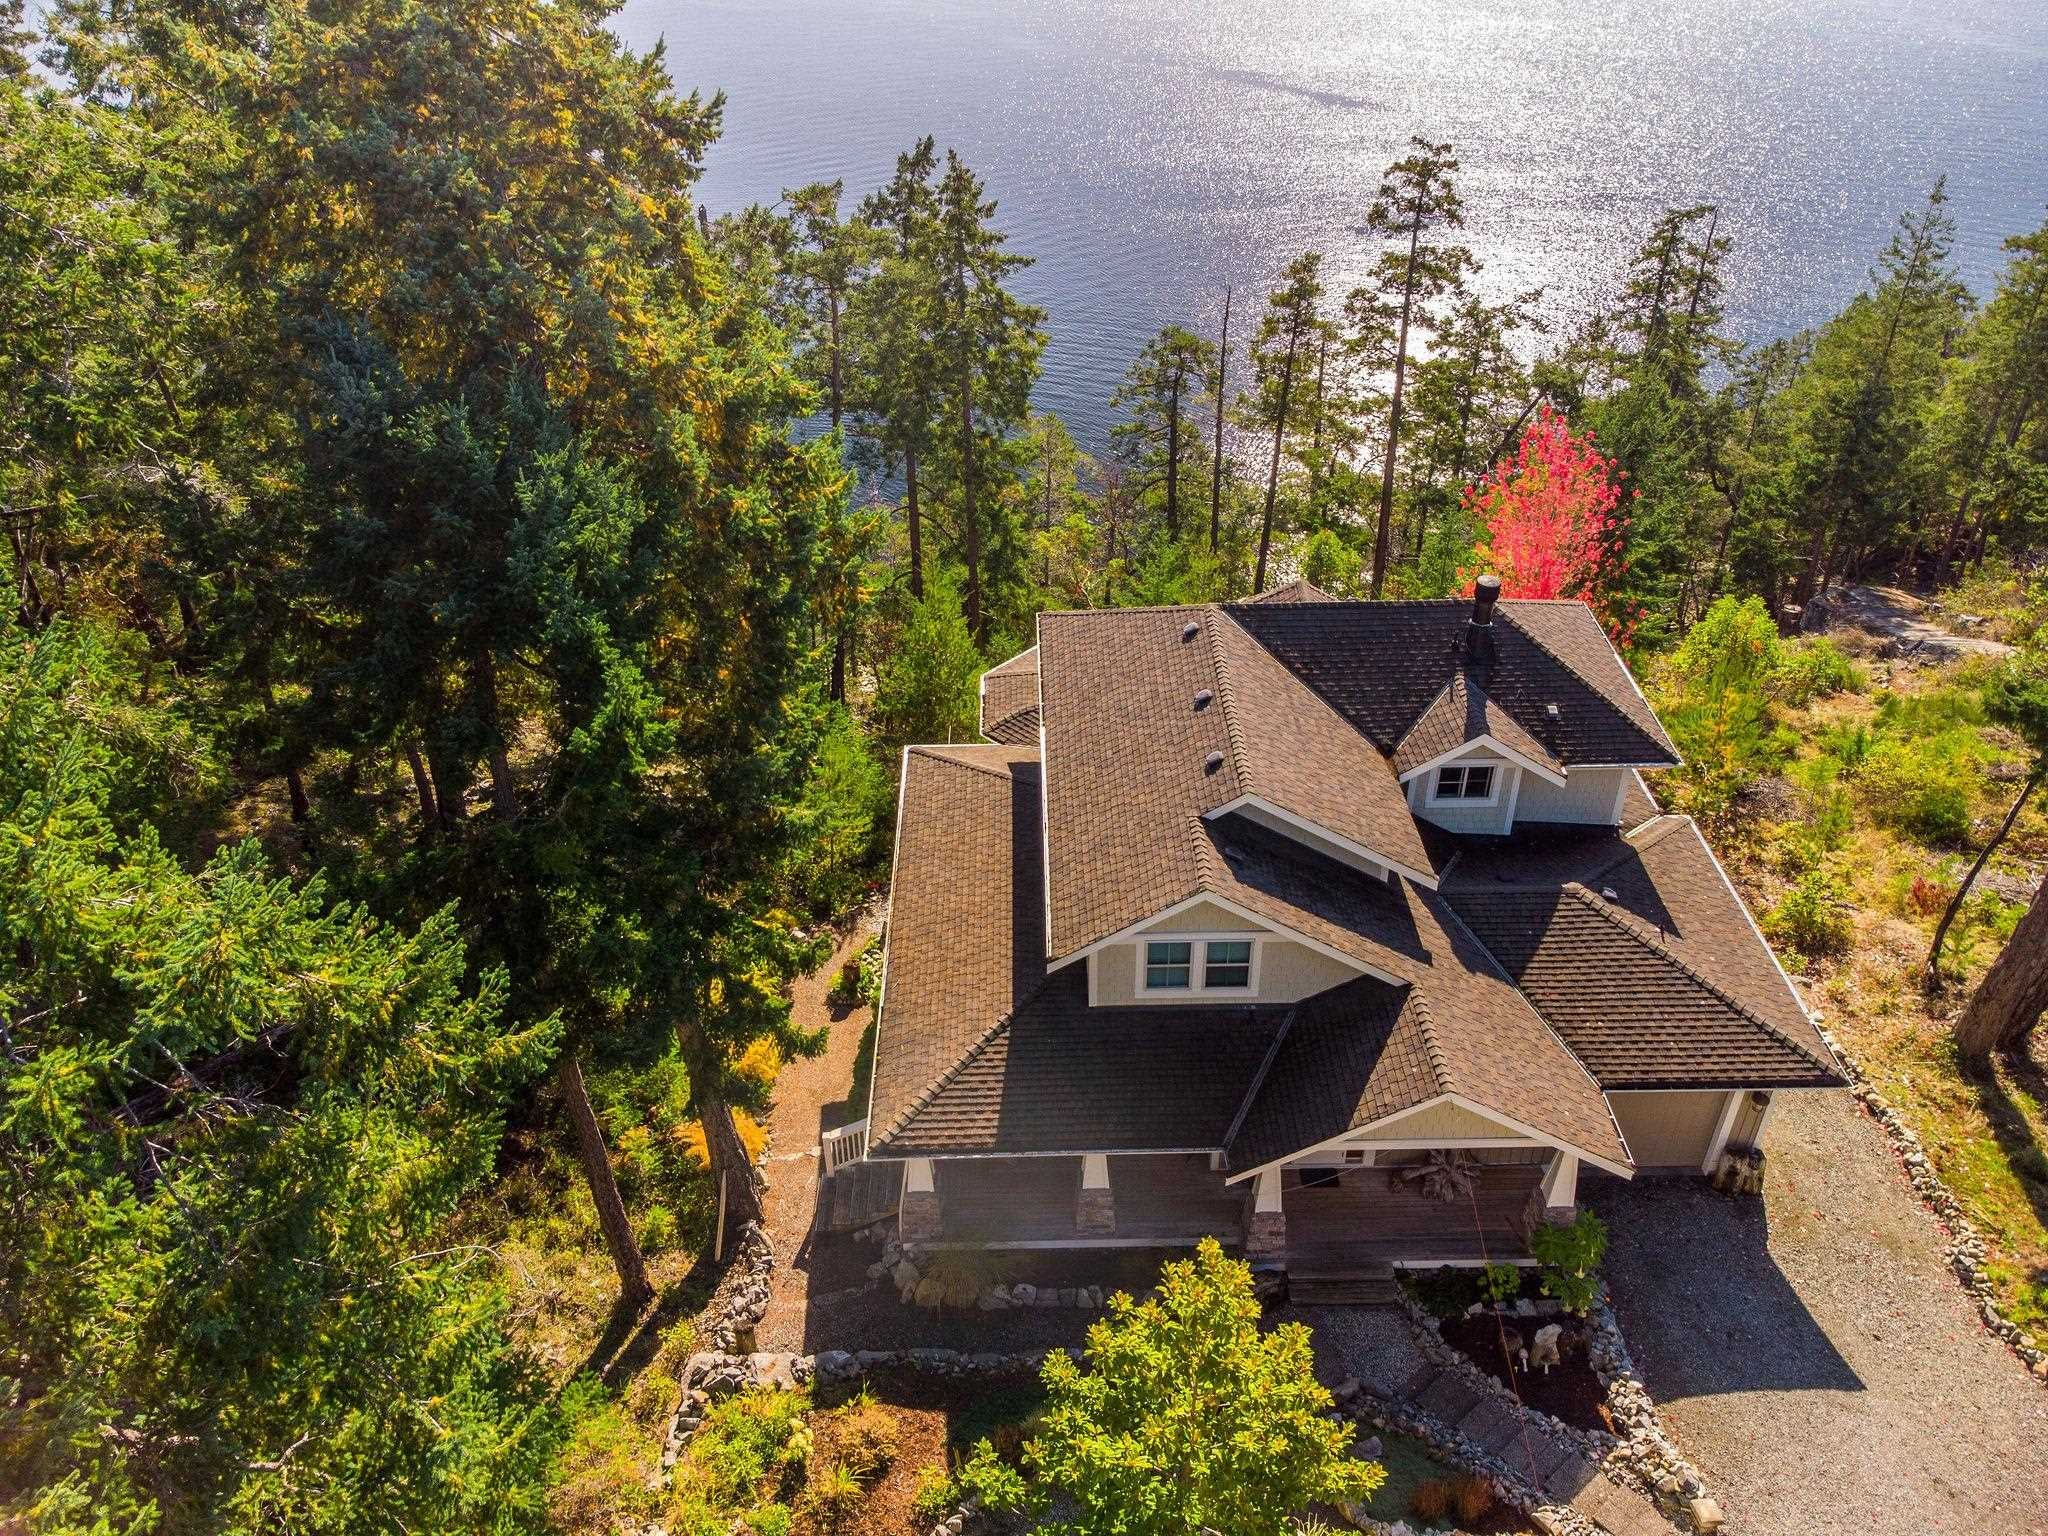 4220 ORCA ROAD - Pender Harbour Egmont House/Single Family for sale, 4 Bedrooms (R2627470)